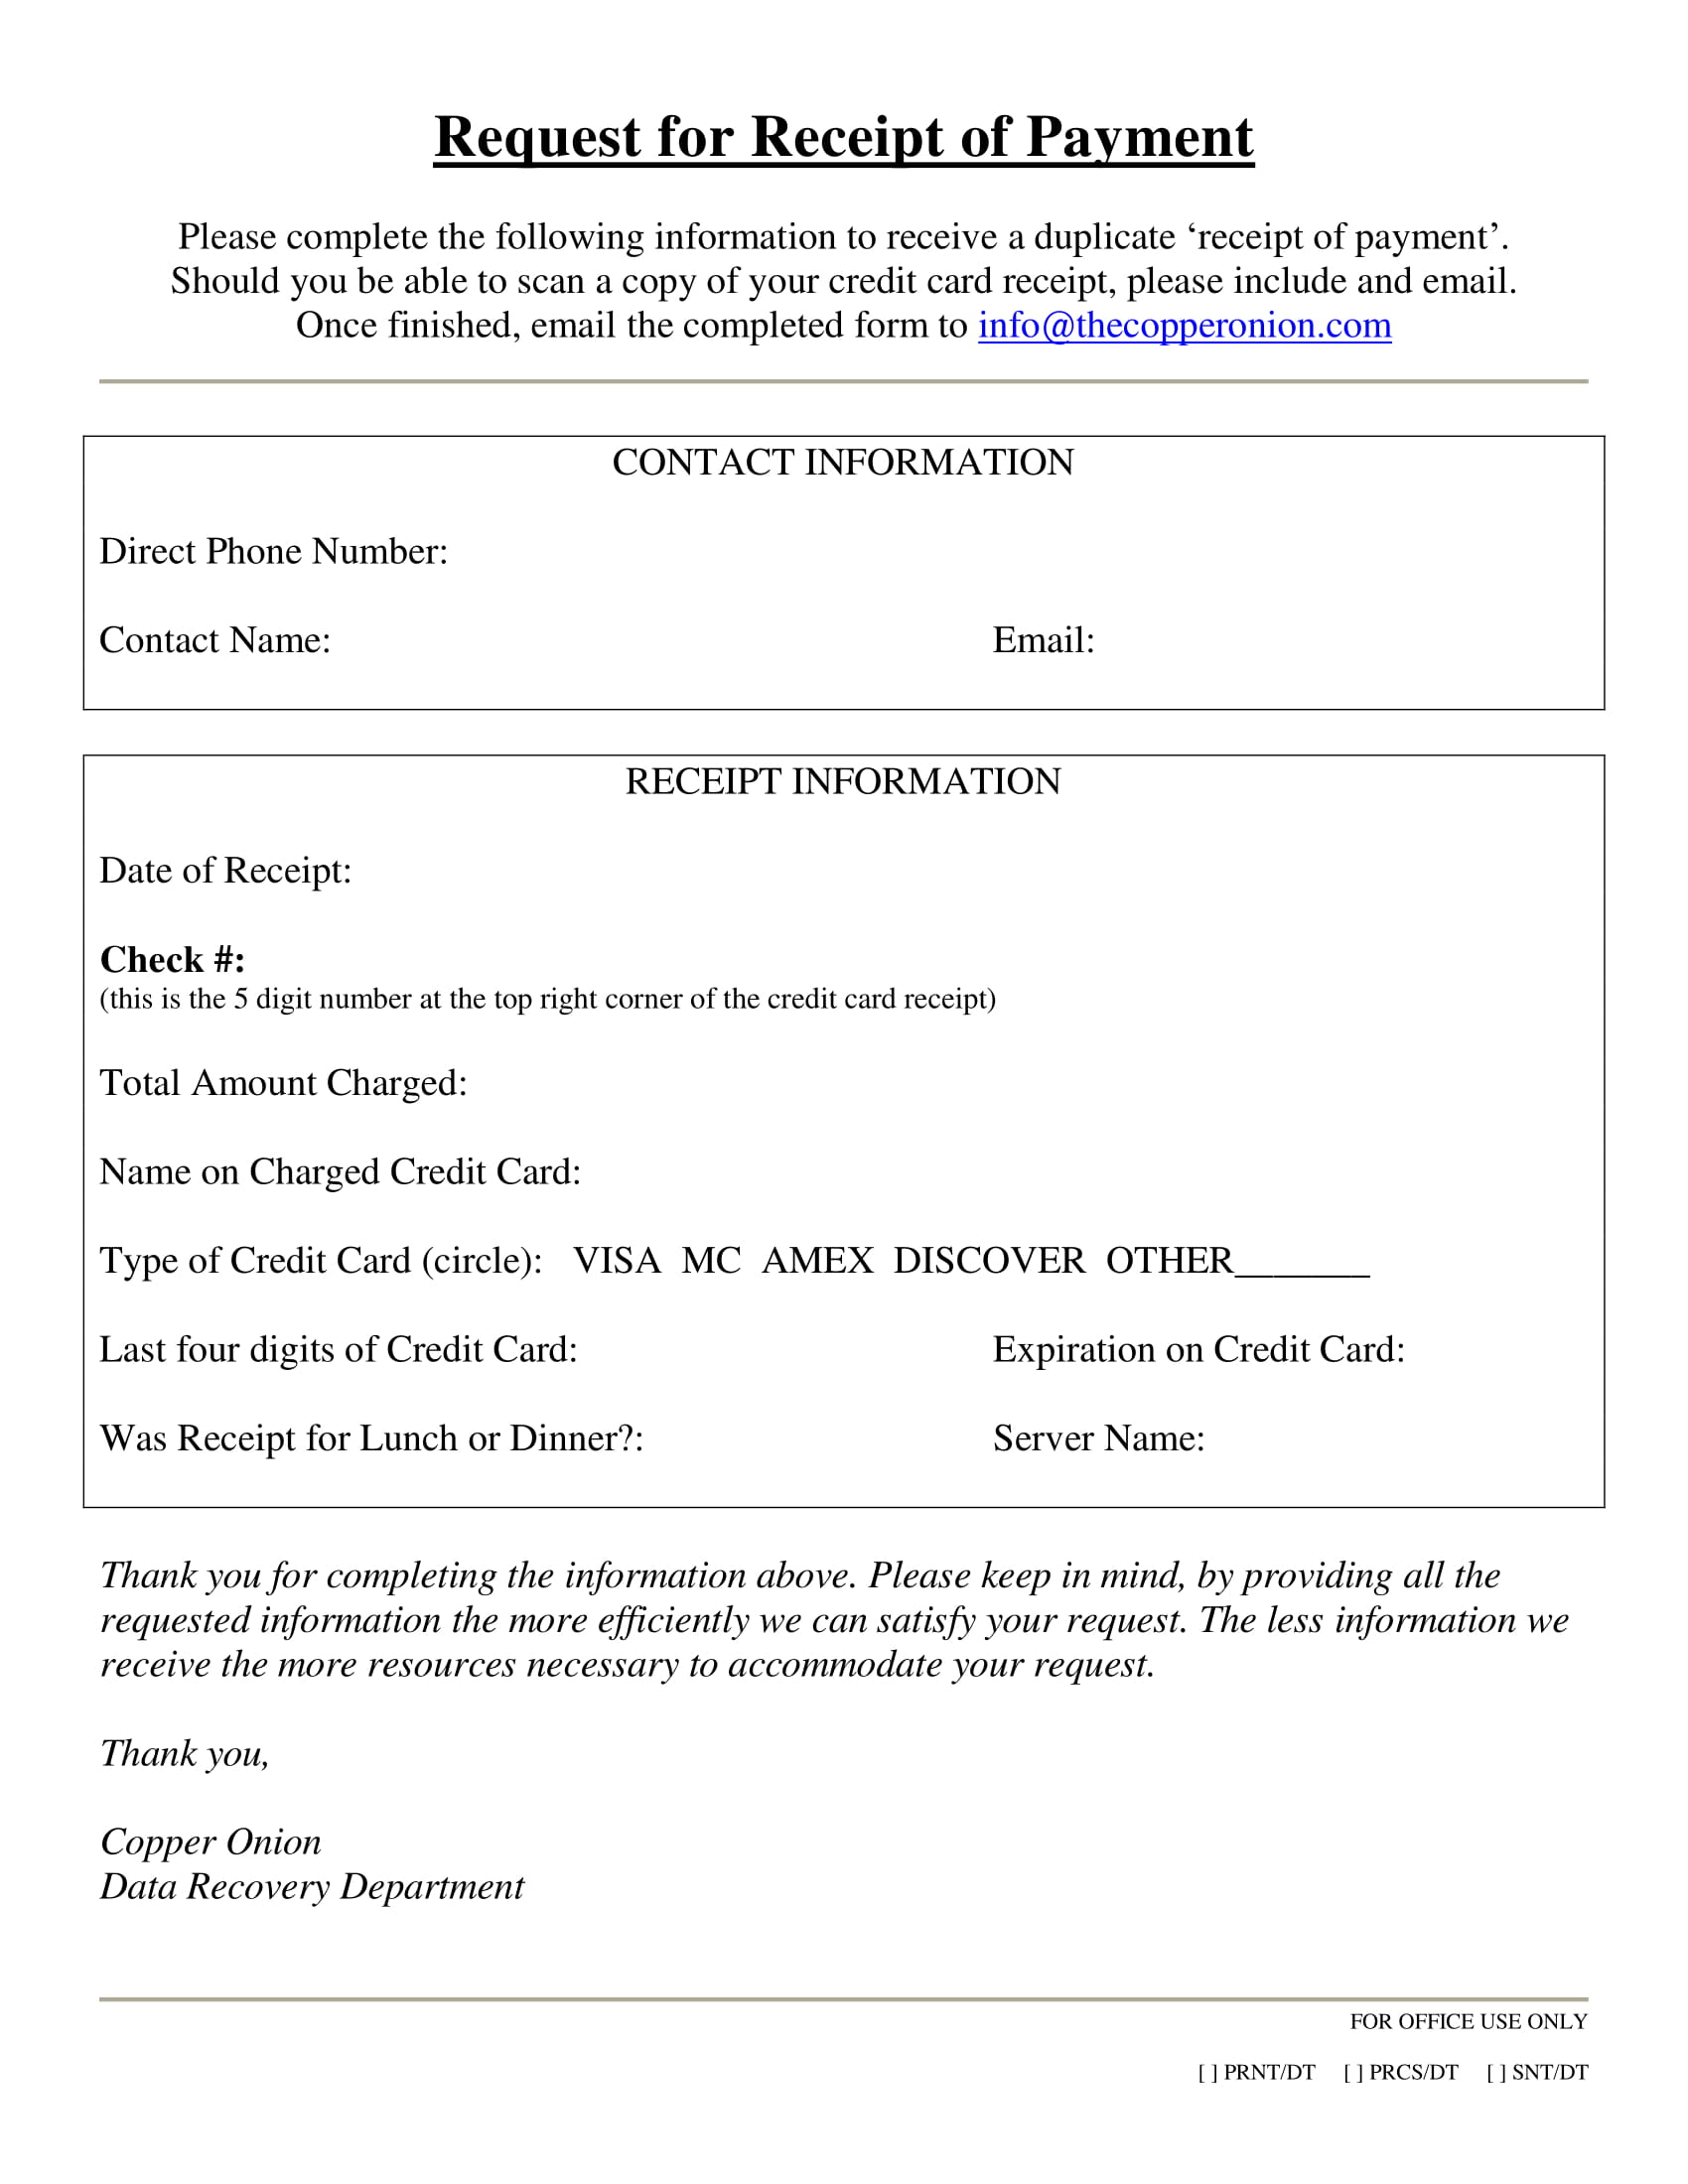 request for receipt of payment example